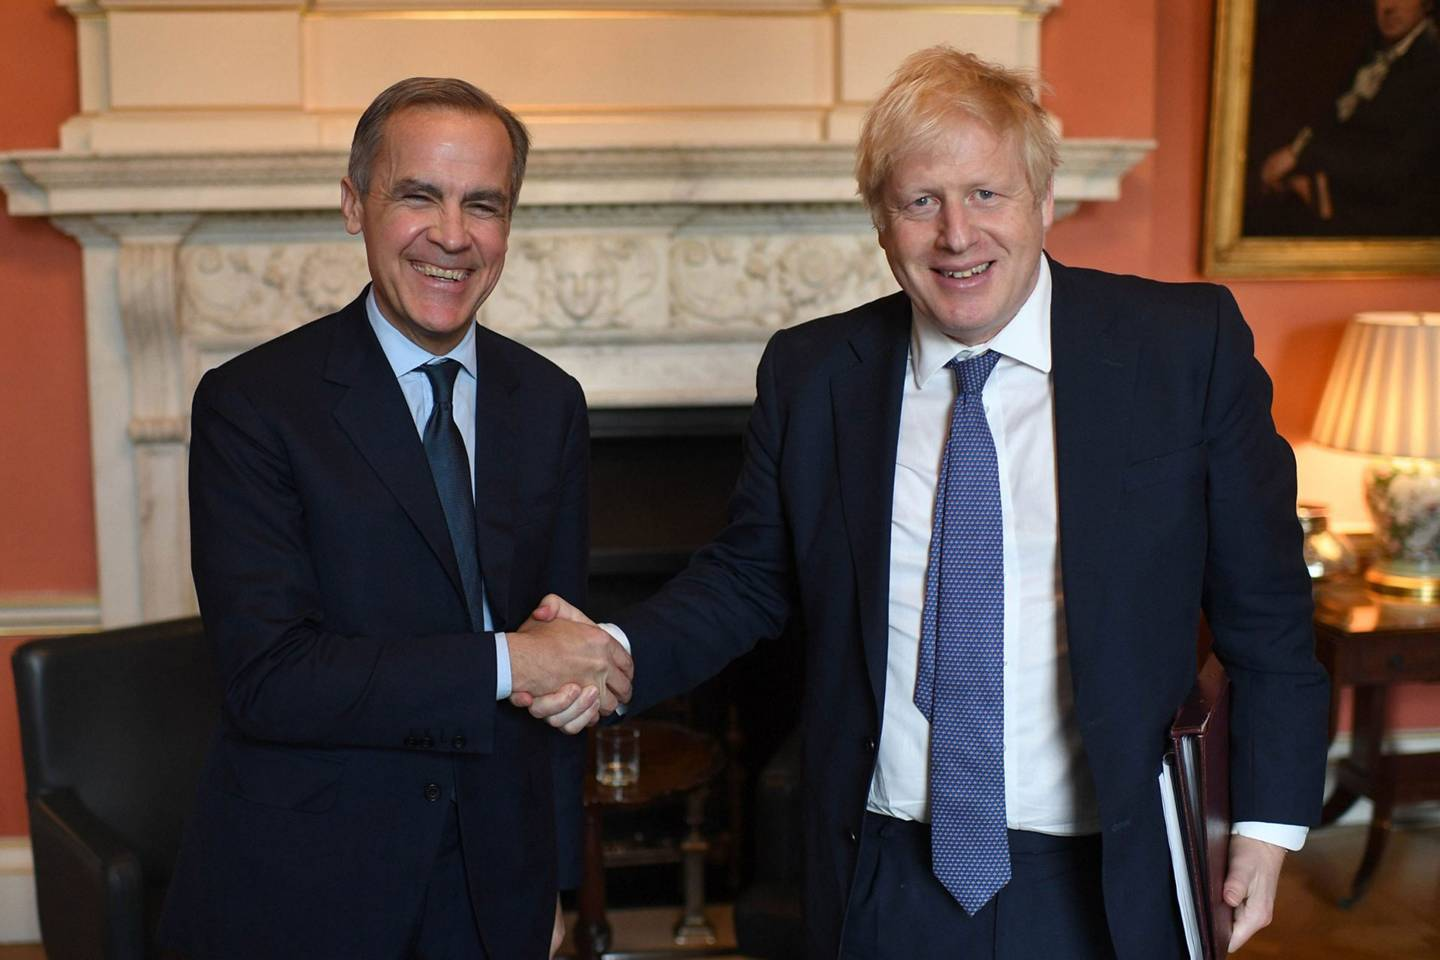 Mark Carney's Net-Zero Claim Confounds Climate Experts